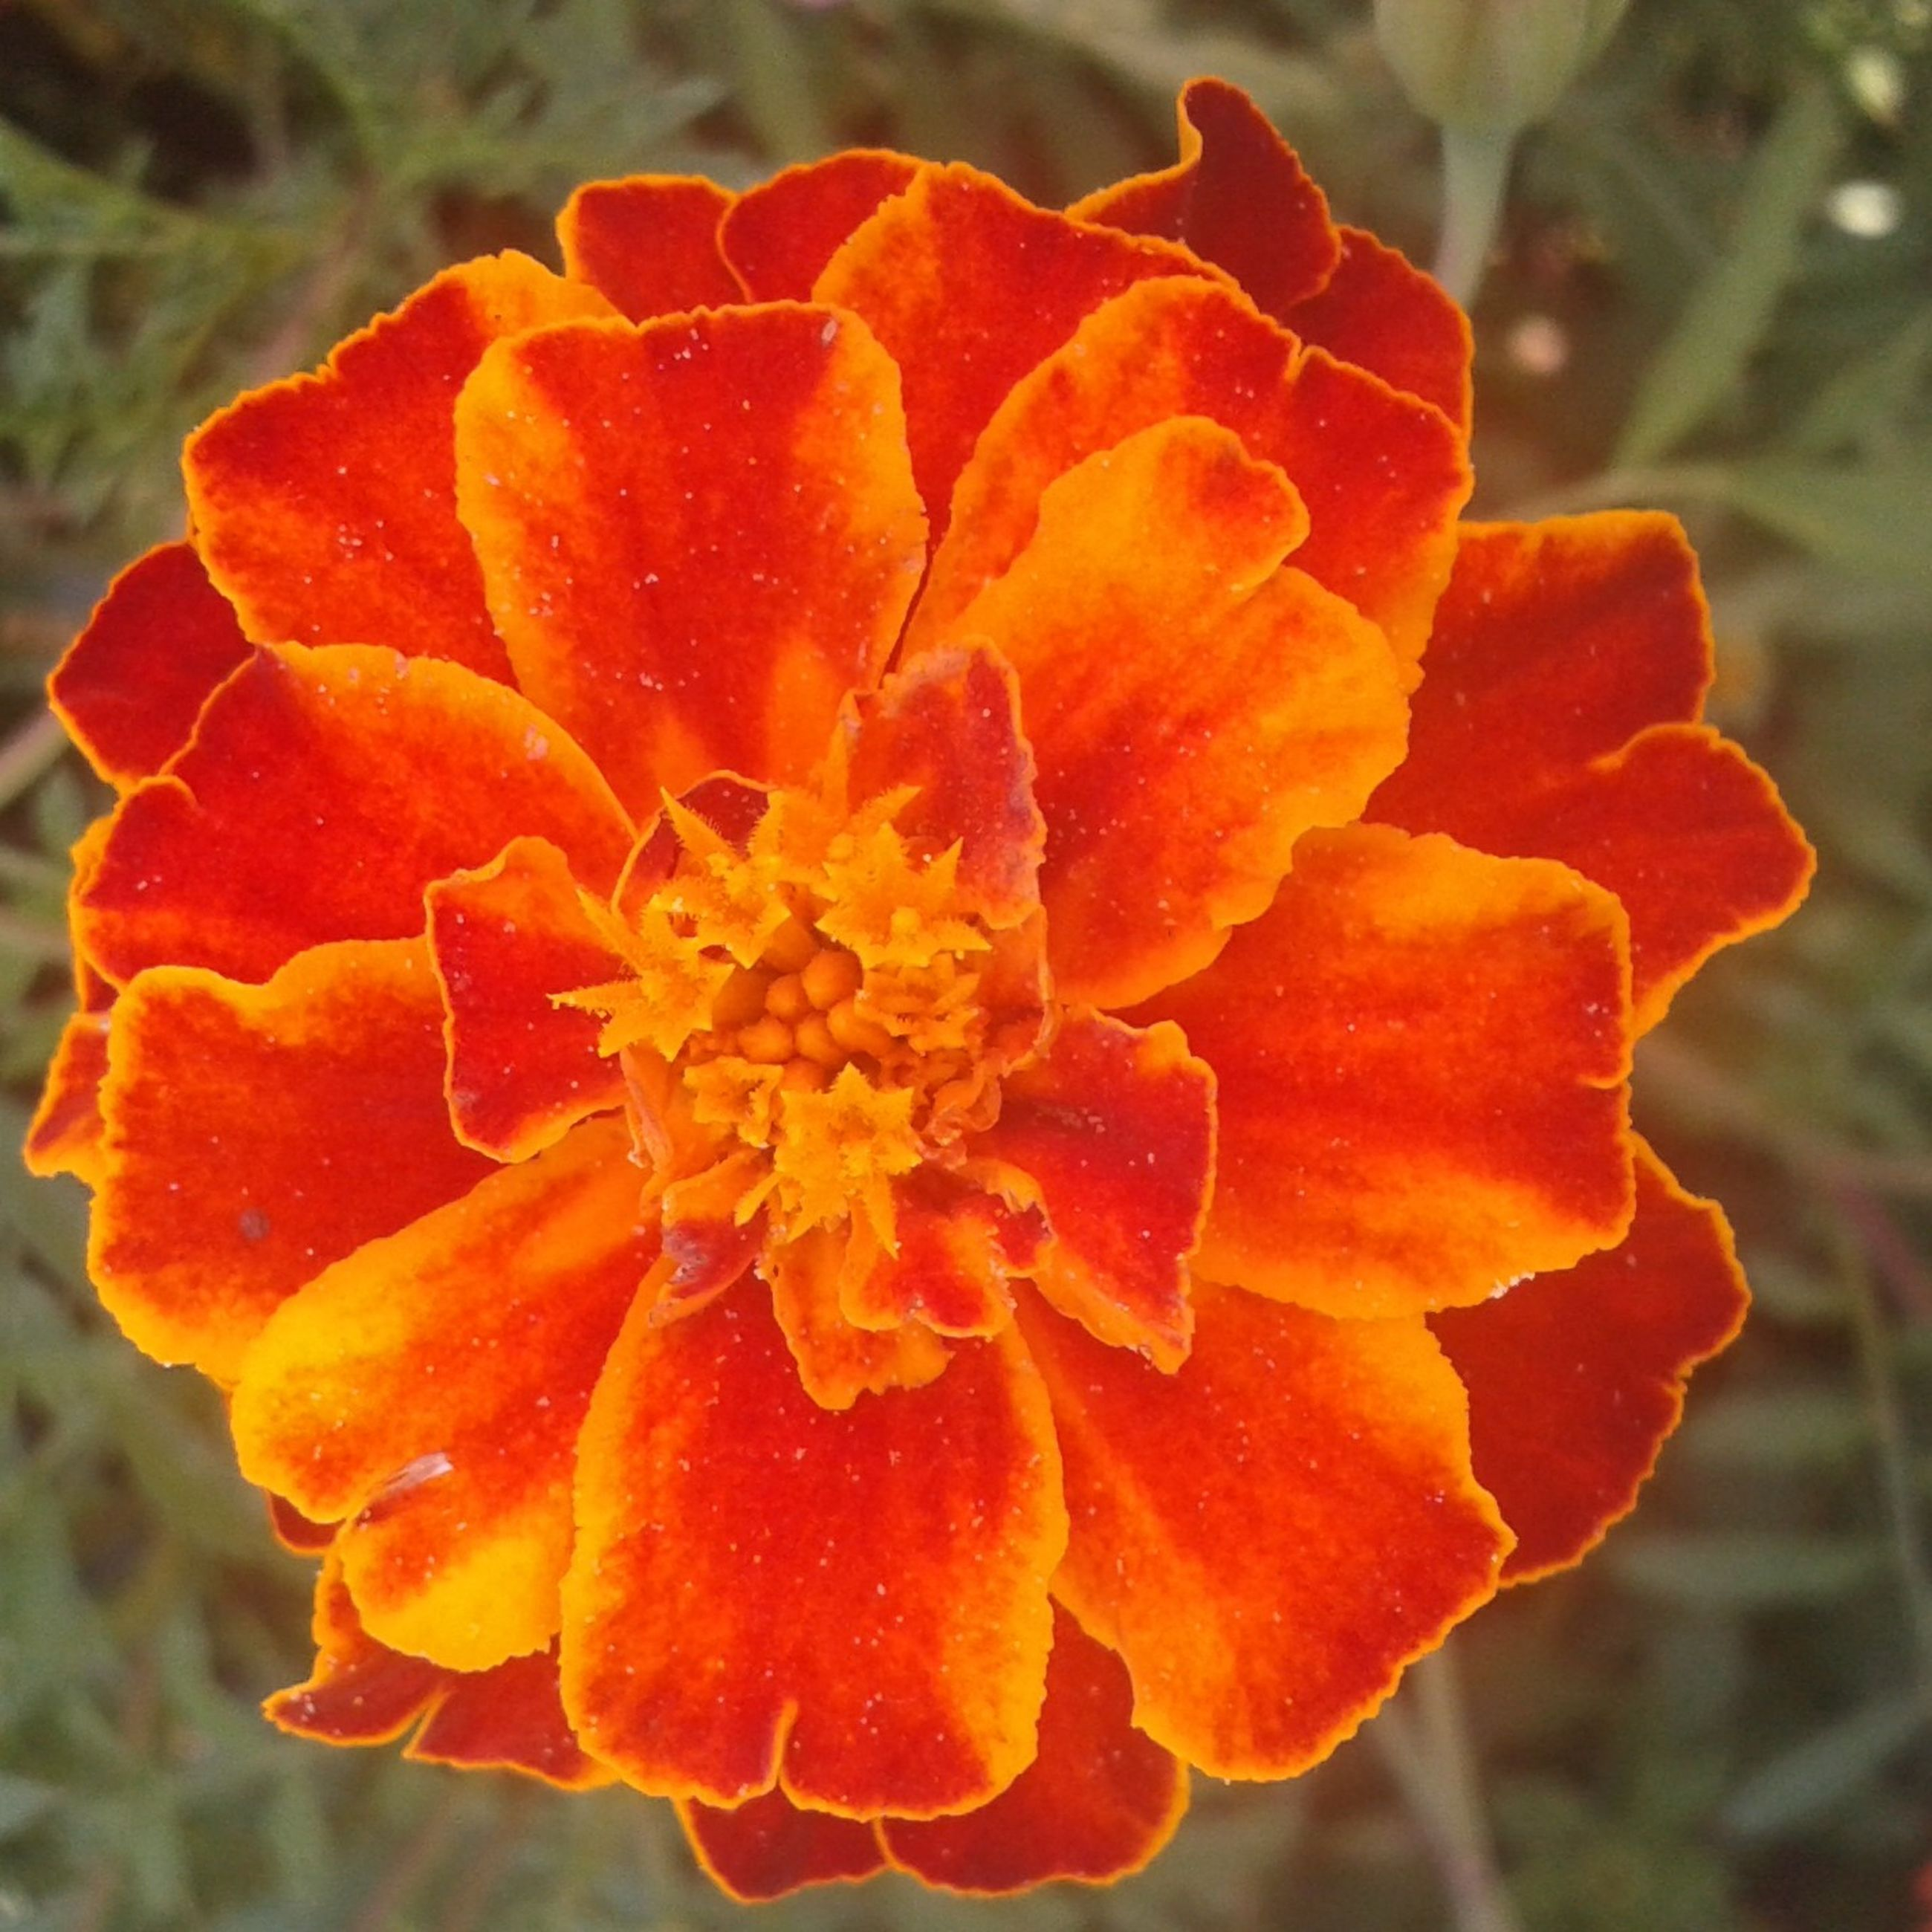 flower, petal, flower head, fragility, freshness, close-up, beauty in nature, growth, focus on foreground, blooming, single flower, orange color, nature, plant, drop, rose - flower, in bloom, red, outdoors, day